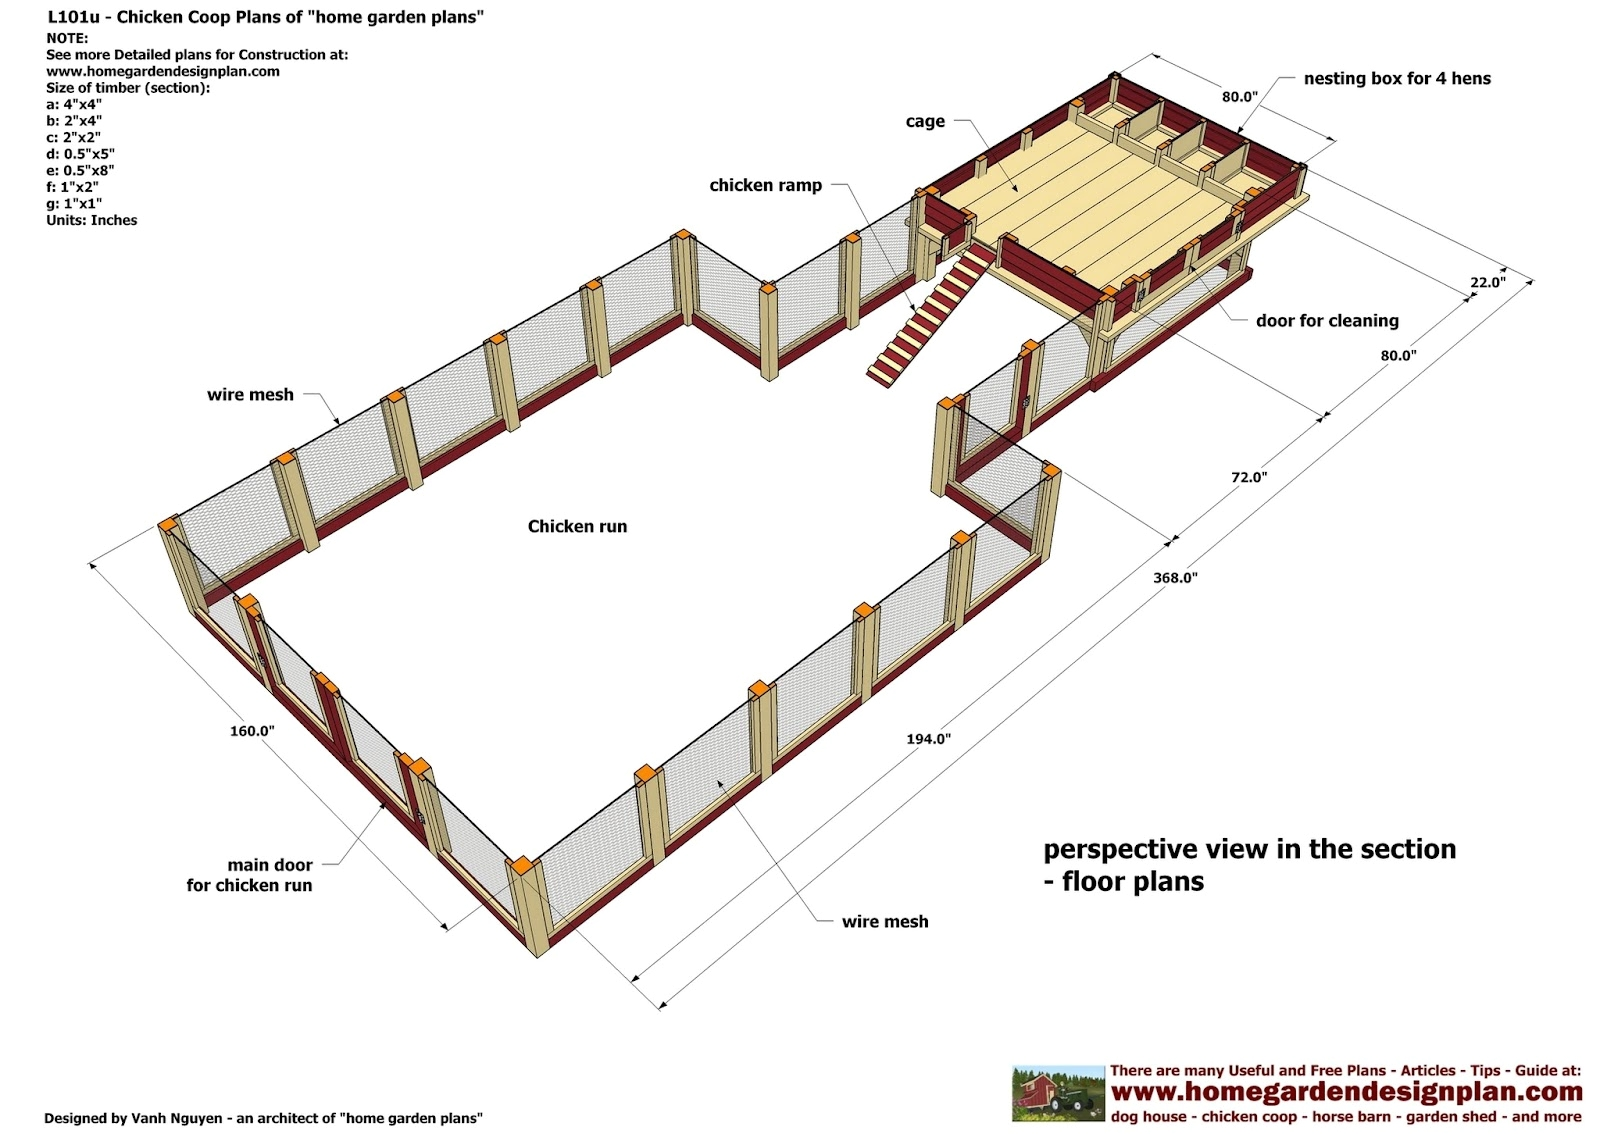 Chicken Coop Plans For 50 Chickens With